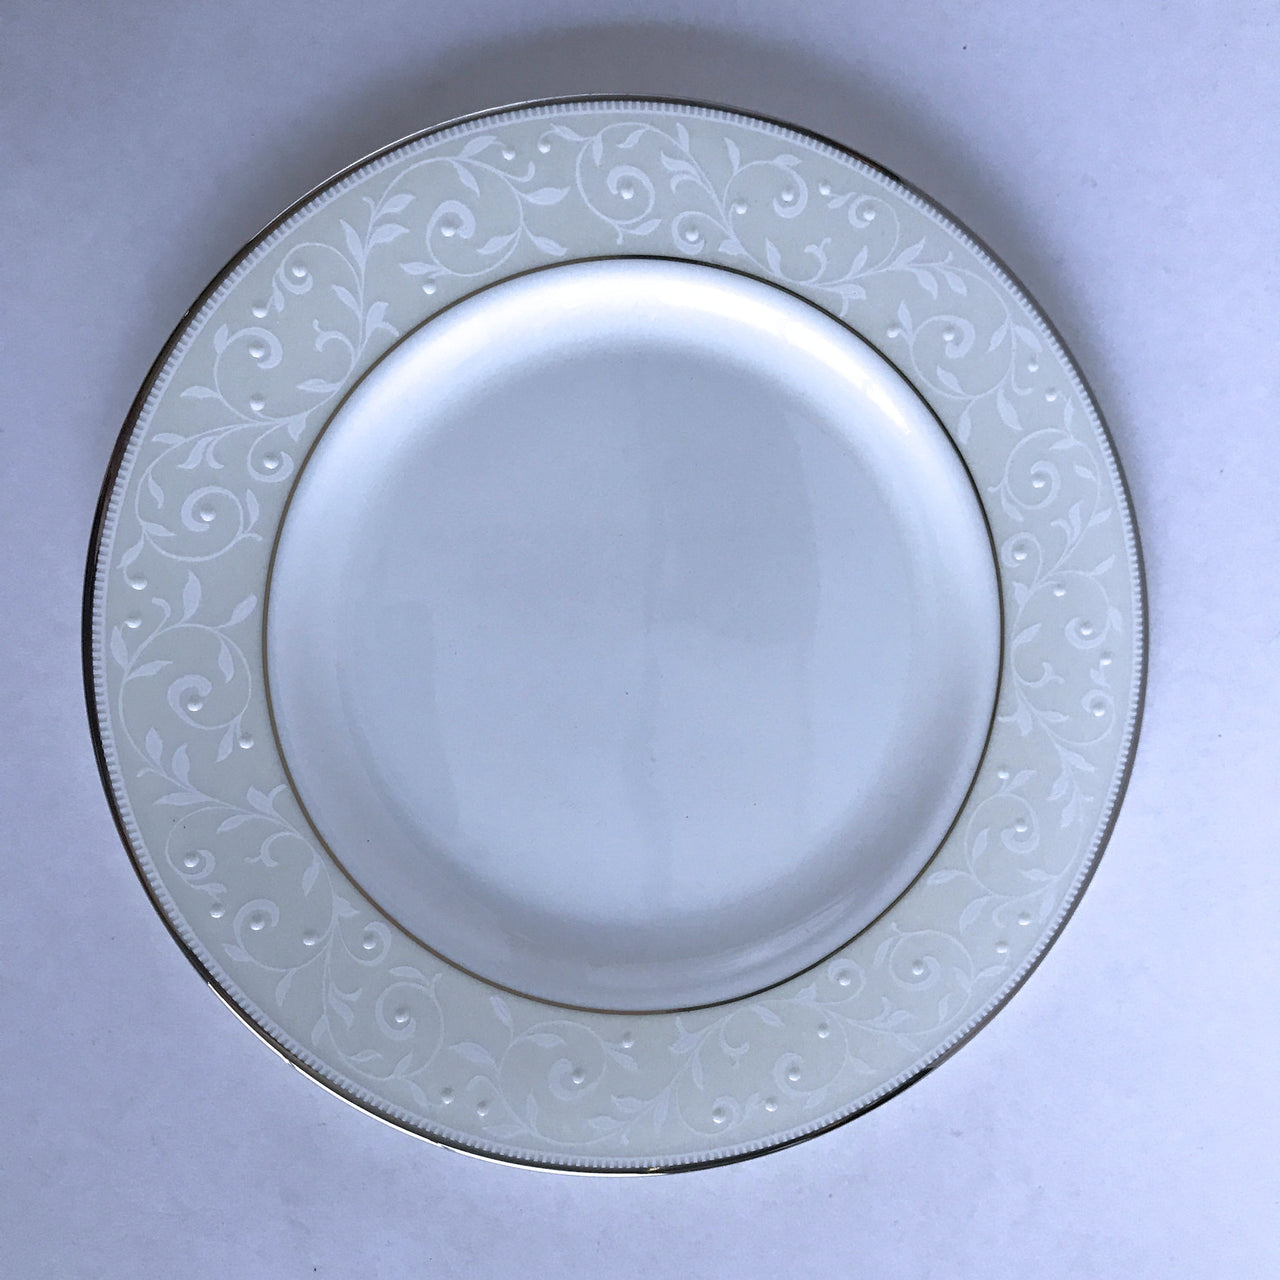 Lenox China Opal Innocence Salad Plate White Dots Leaves Platinum Trim